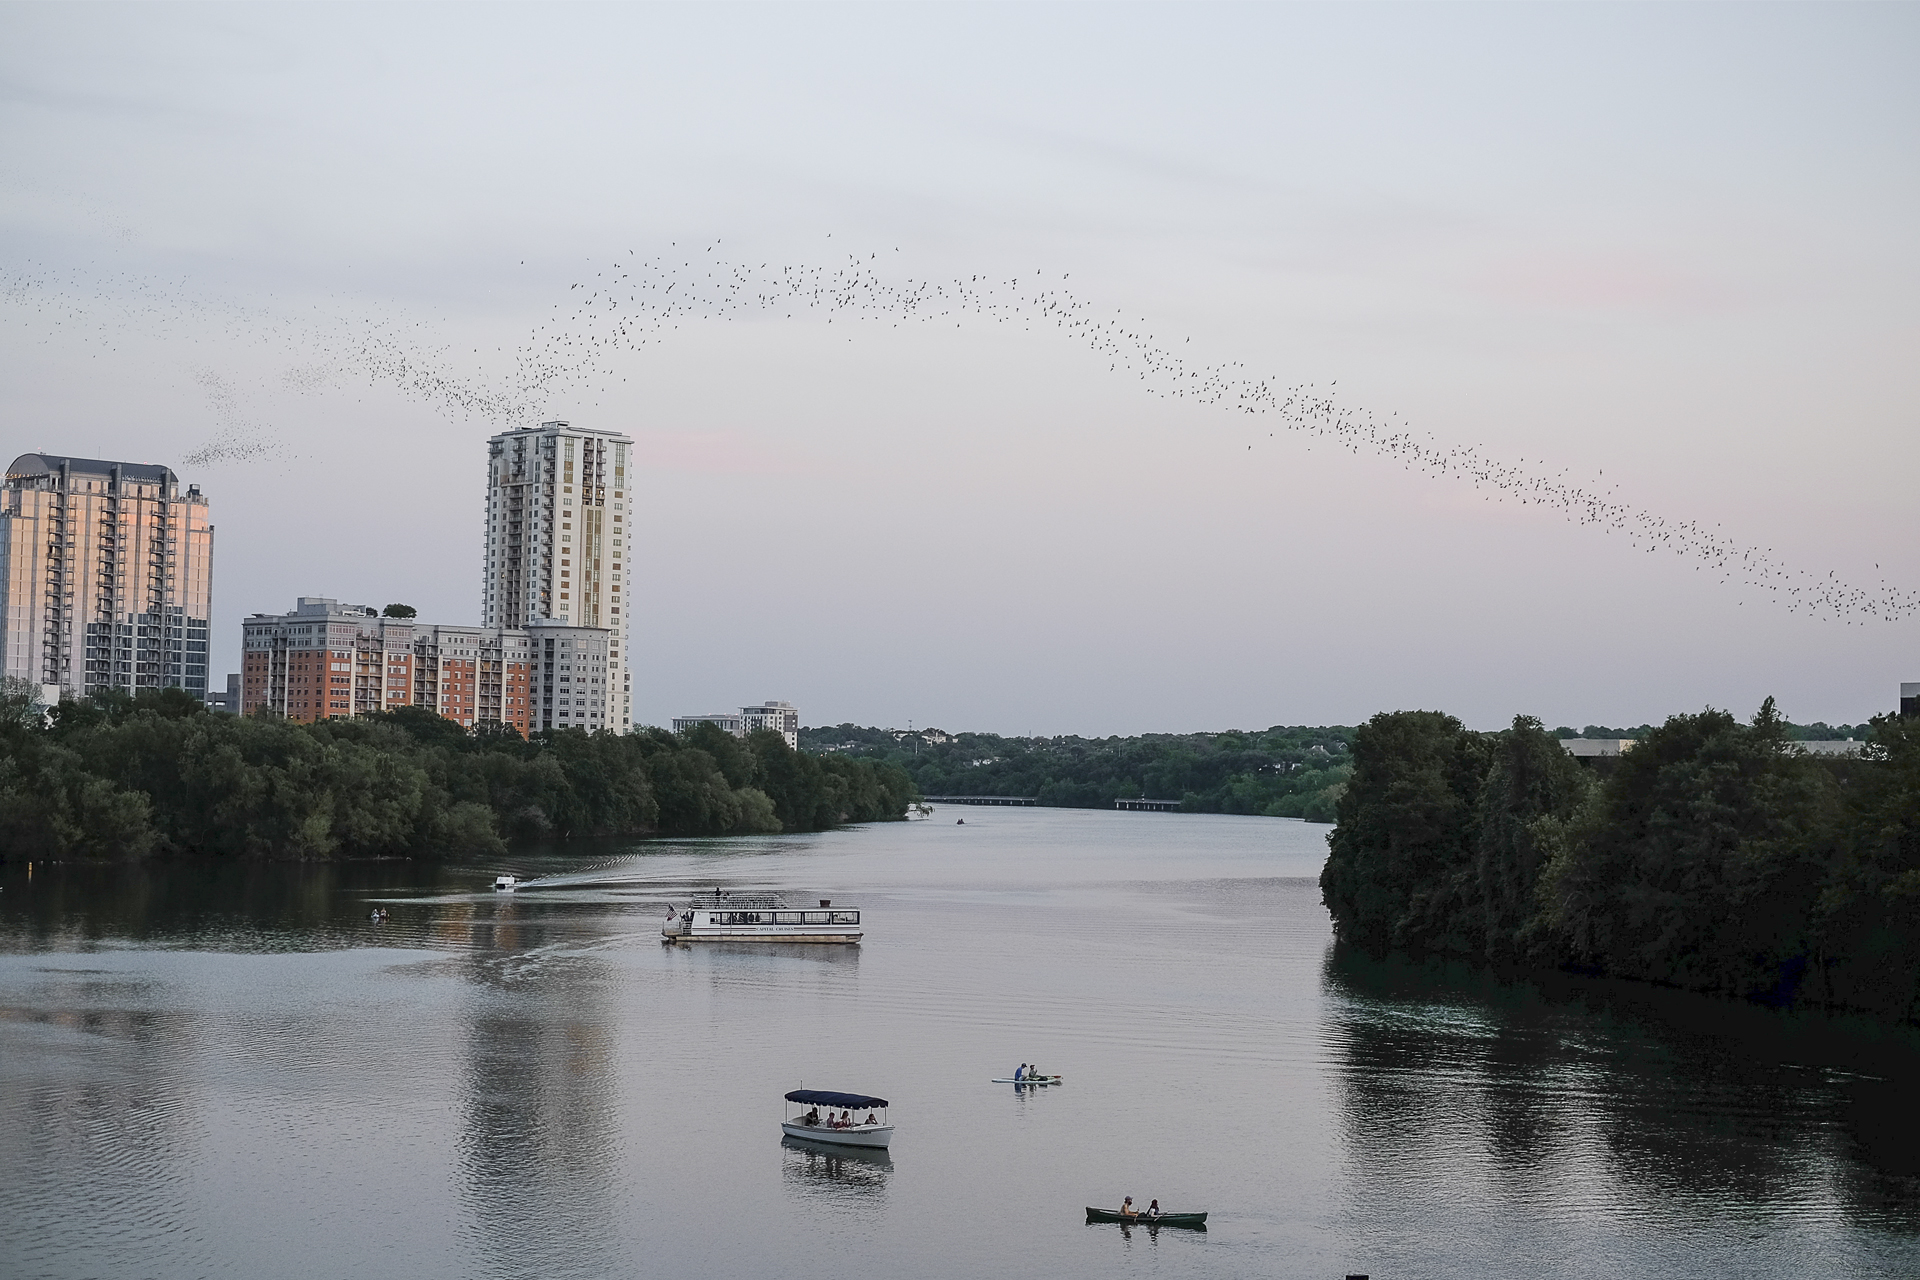 View of the Colorado River from Congress Bridge and the bats flying in an almost horizontal line